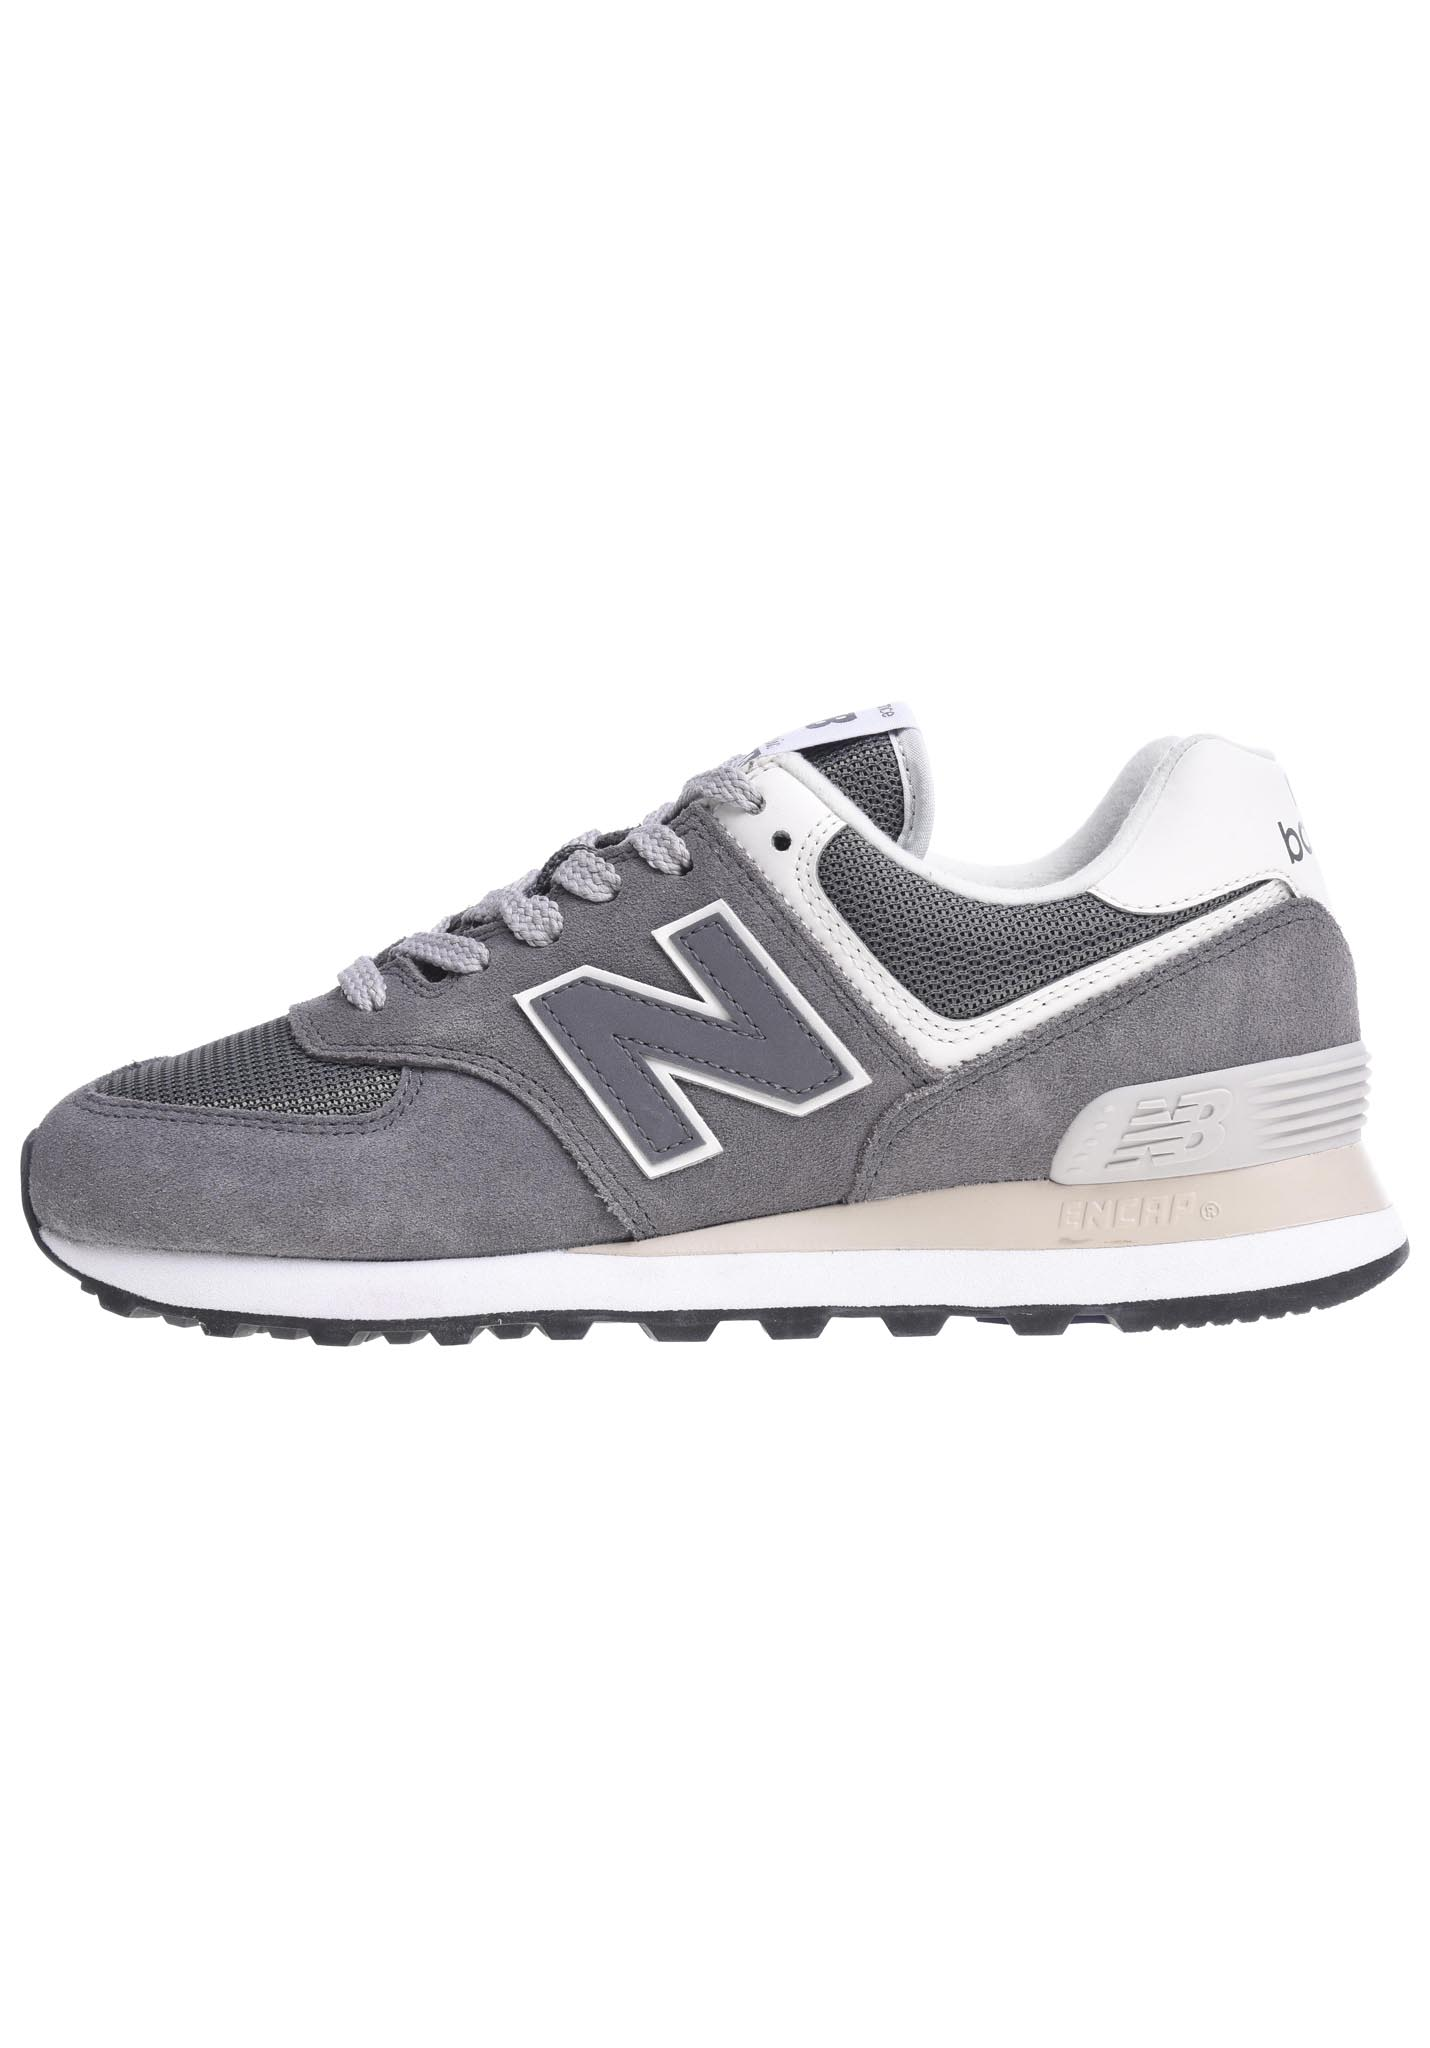 For New Sneakers Women Balance Wl574 B Grey IbvY6f7yg